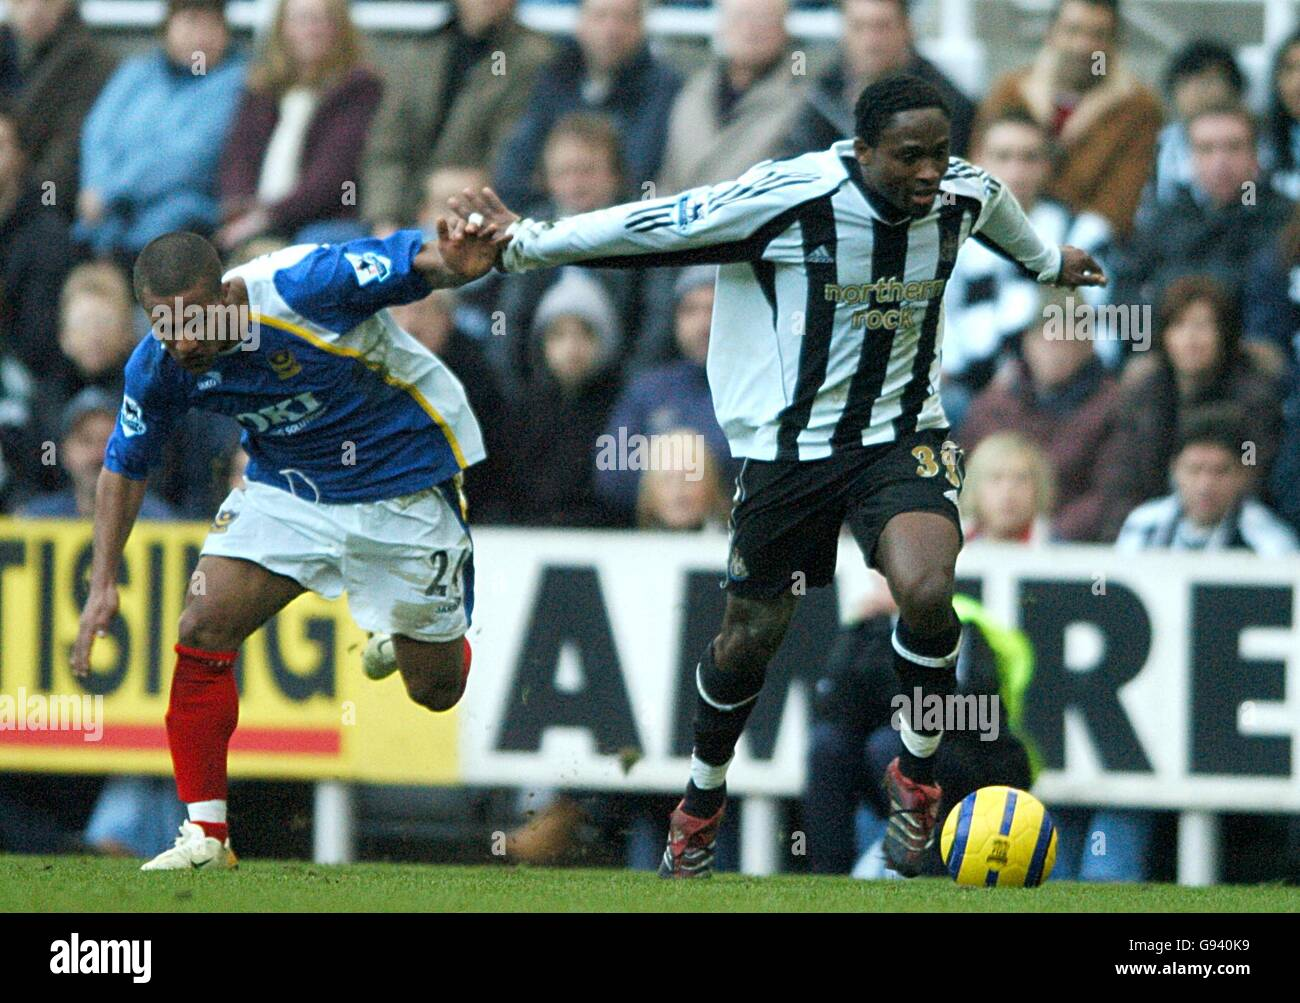 Soccer - FA Barclays Premiership - Newcastle United v Portsmouth - St James Park - Stock Image